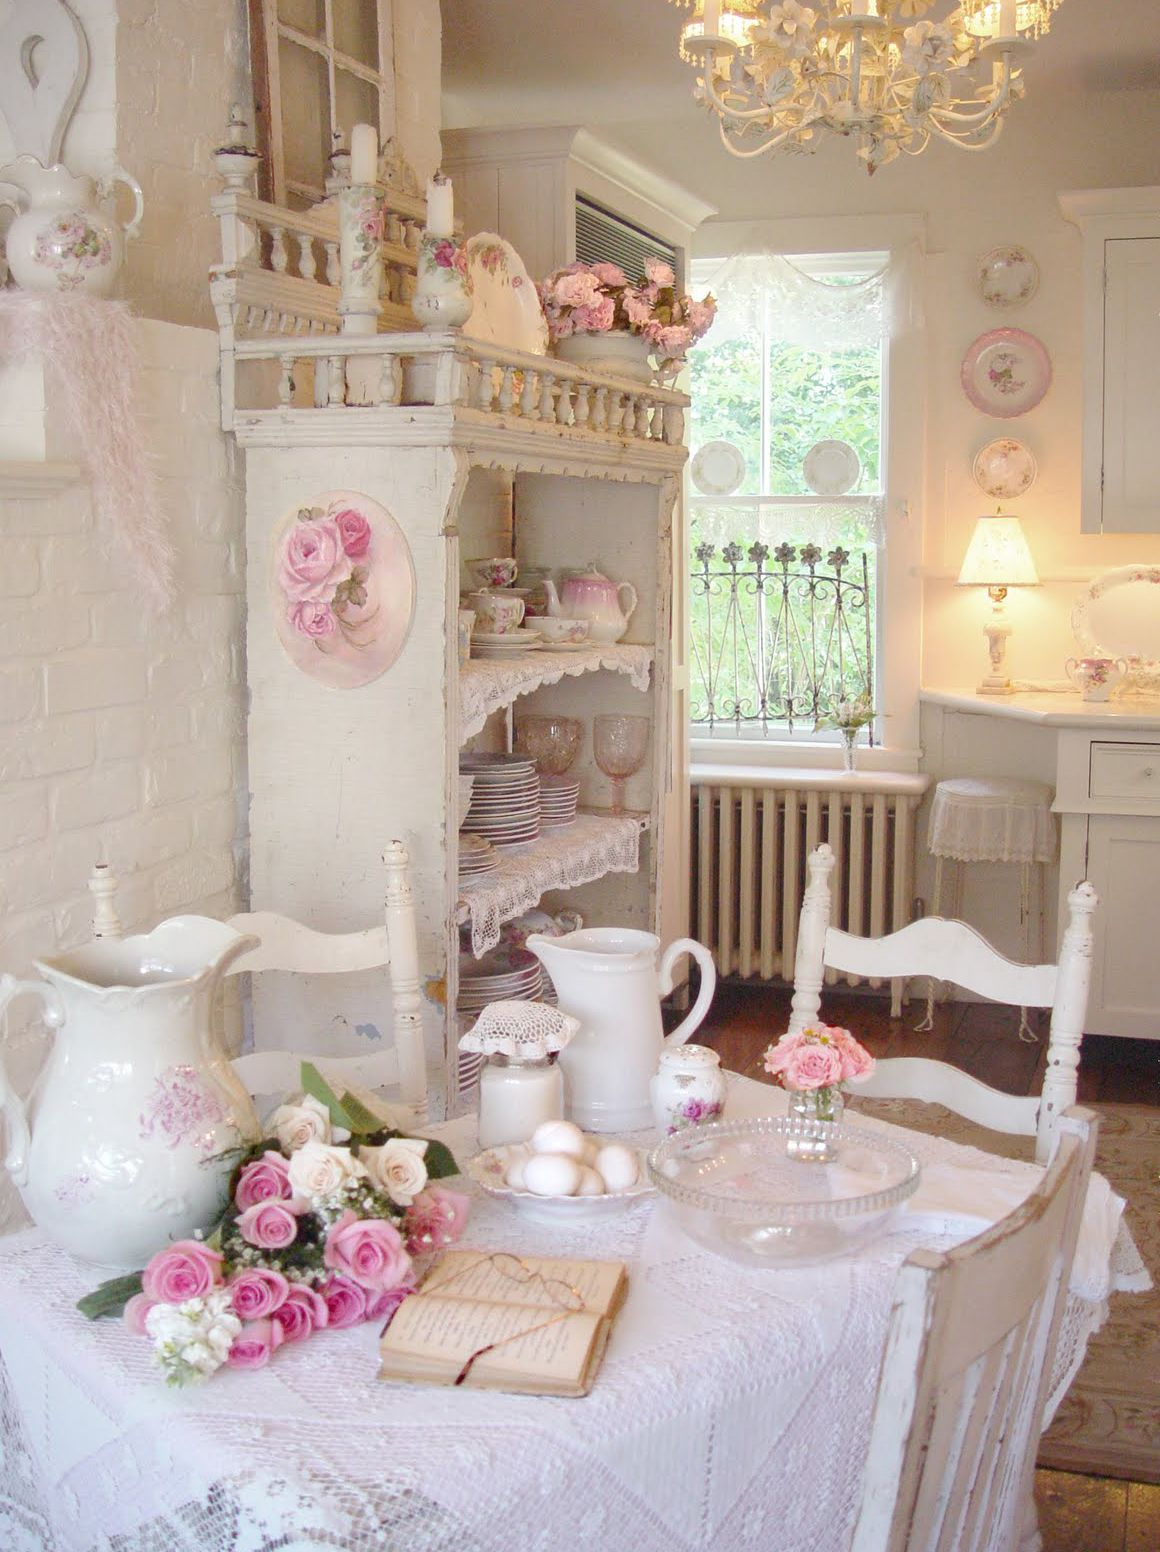 Embrace your inner brit with shabby chic interior design styles and - Embrace Your Inner Brit With Shabby Chic